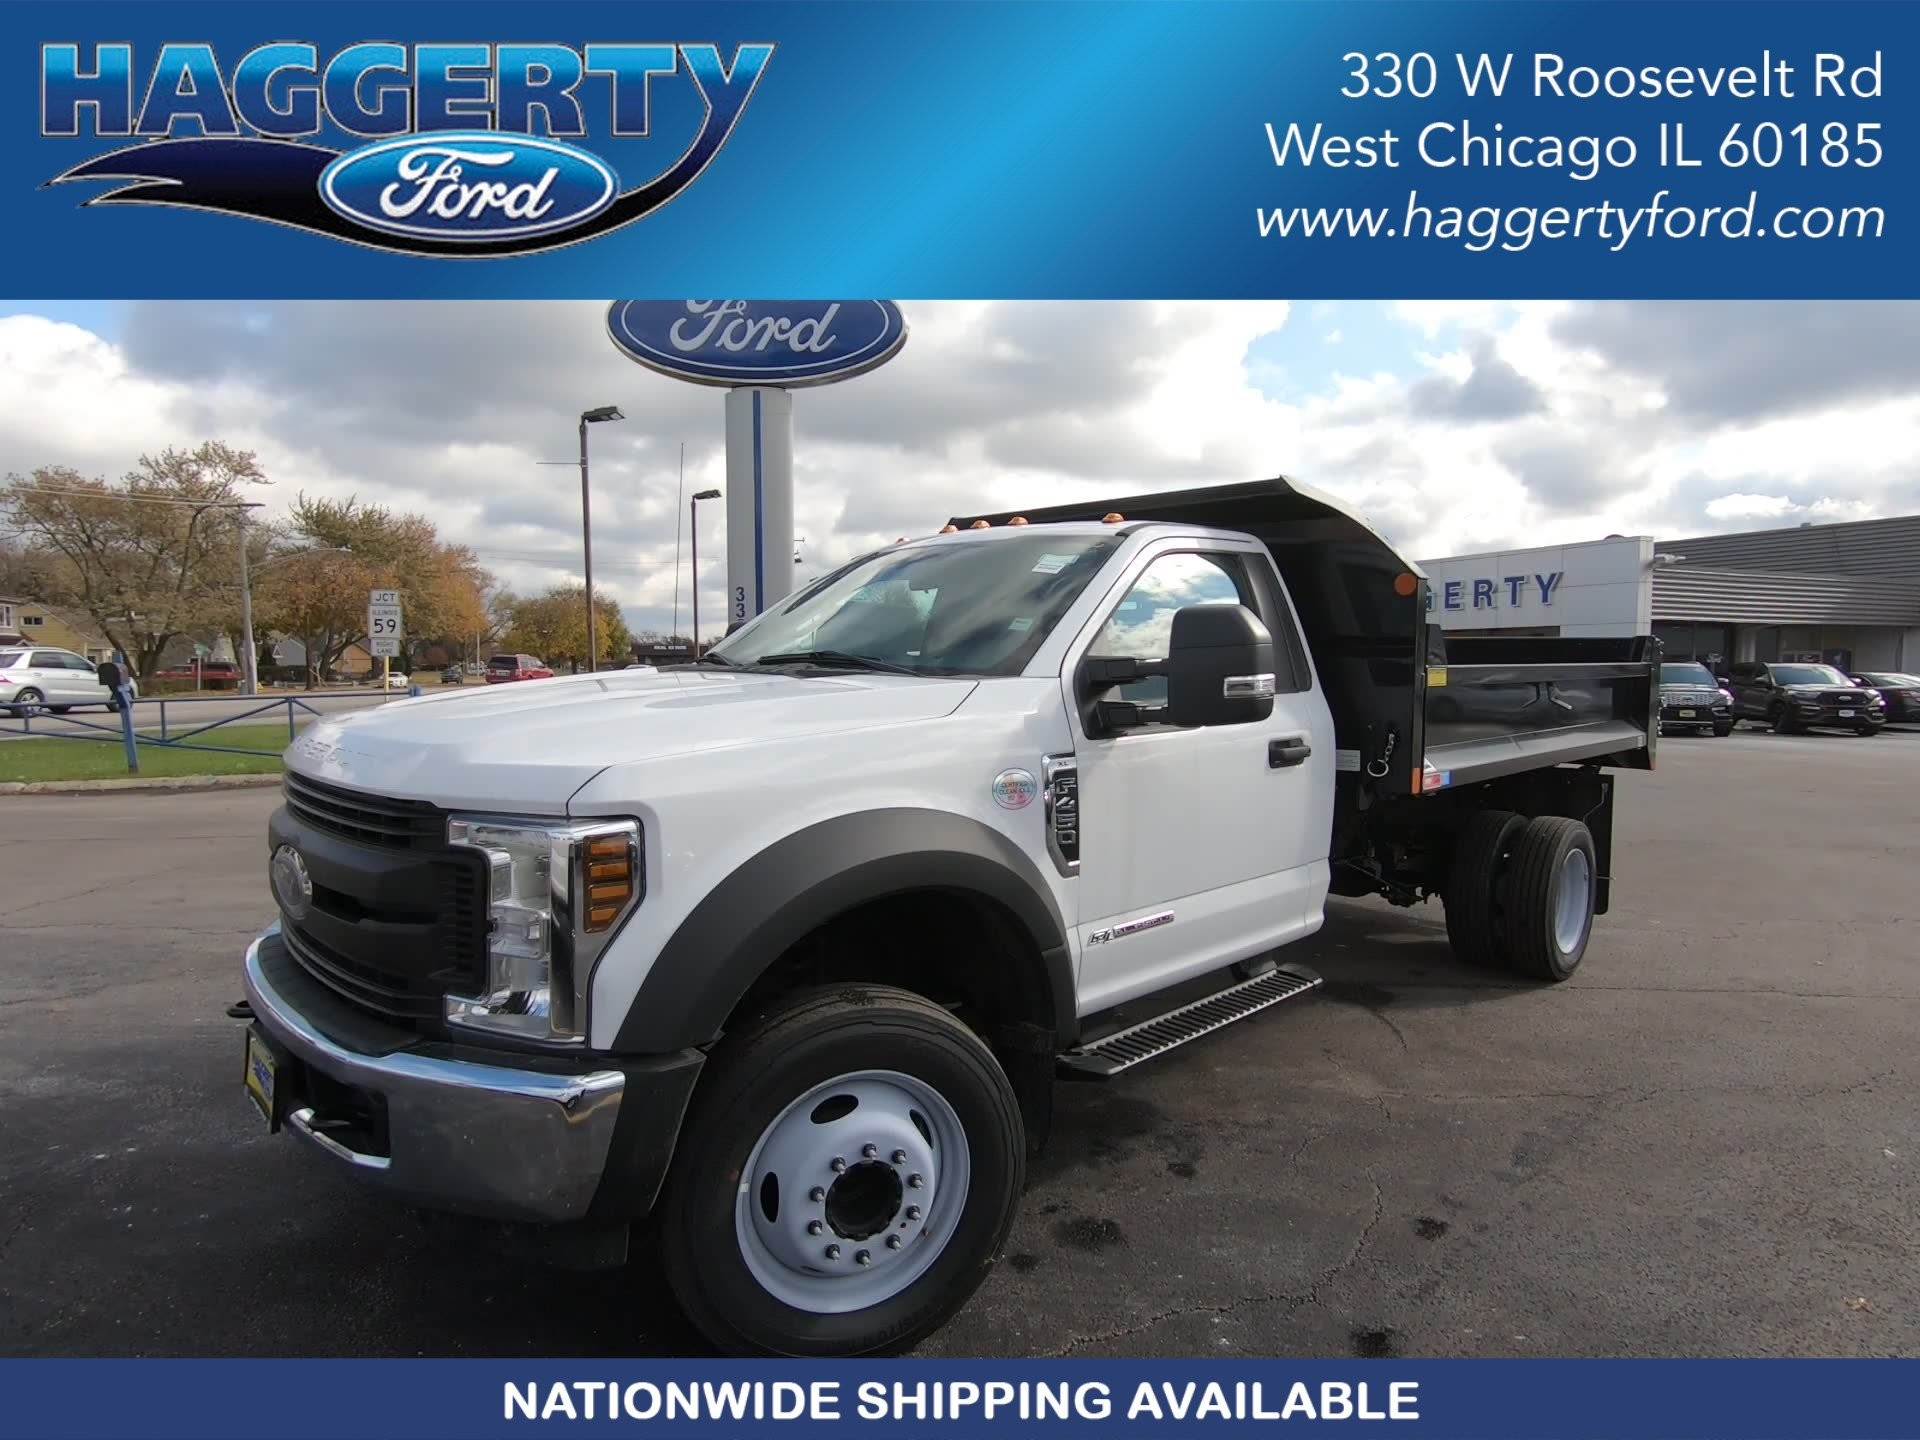 2011 Super Duty Upfitter Wires New 2019 ford Super Duty F 450 Drw Rwd Regular Cab Chassis Cab Of 2011 Super Duty Upfitter Wires